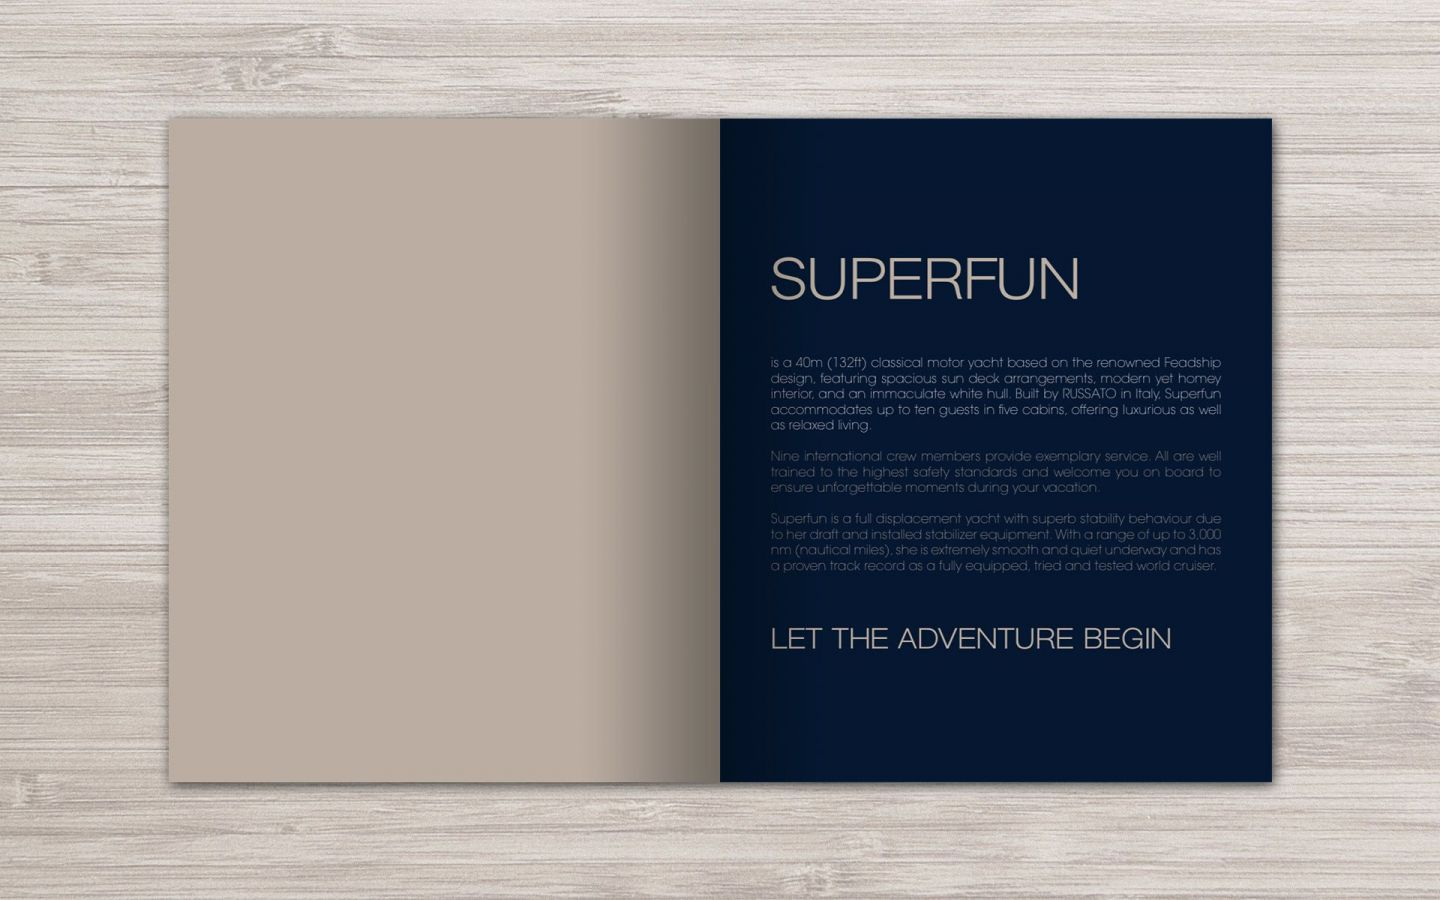 Superfun Motor Yacht Branding Project by Crevisio